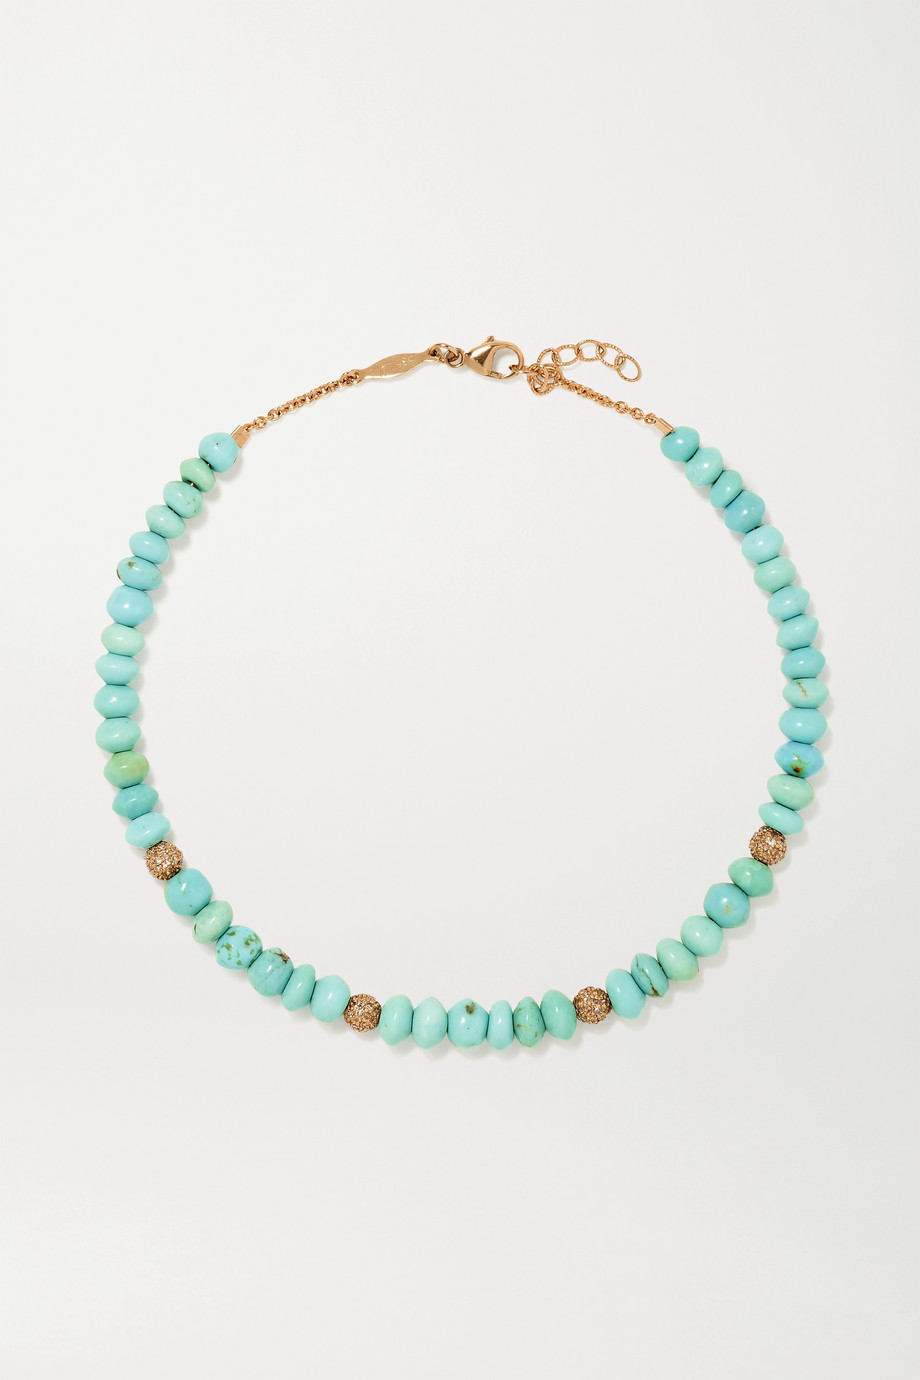 JACQUIE AICHE 14-karat gold, turquoise and diamond anklet